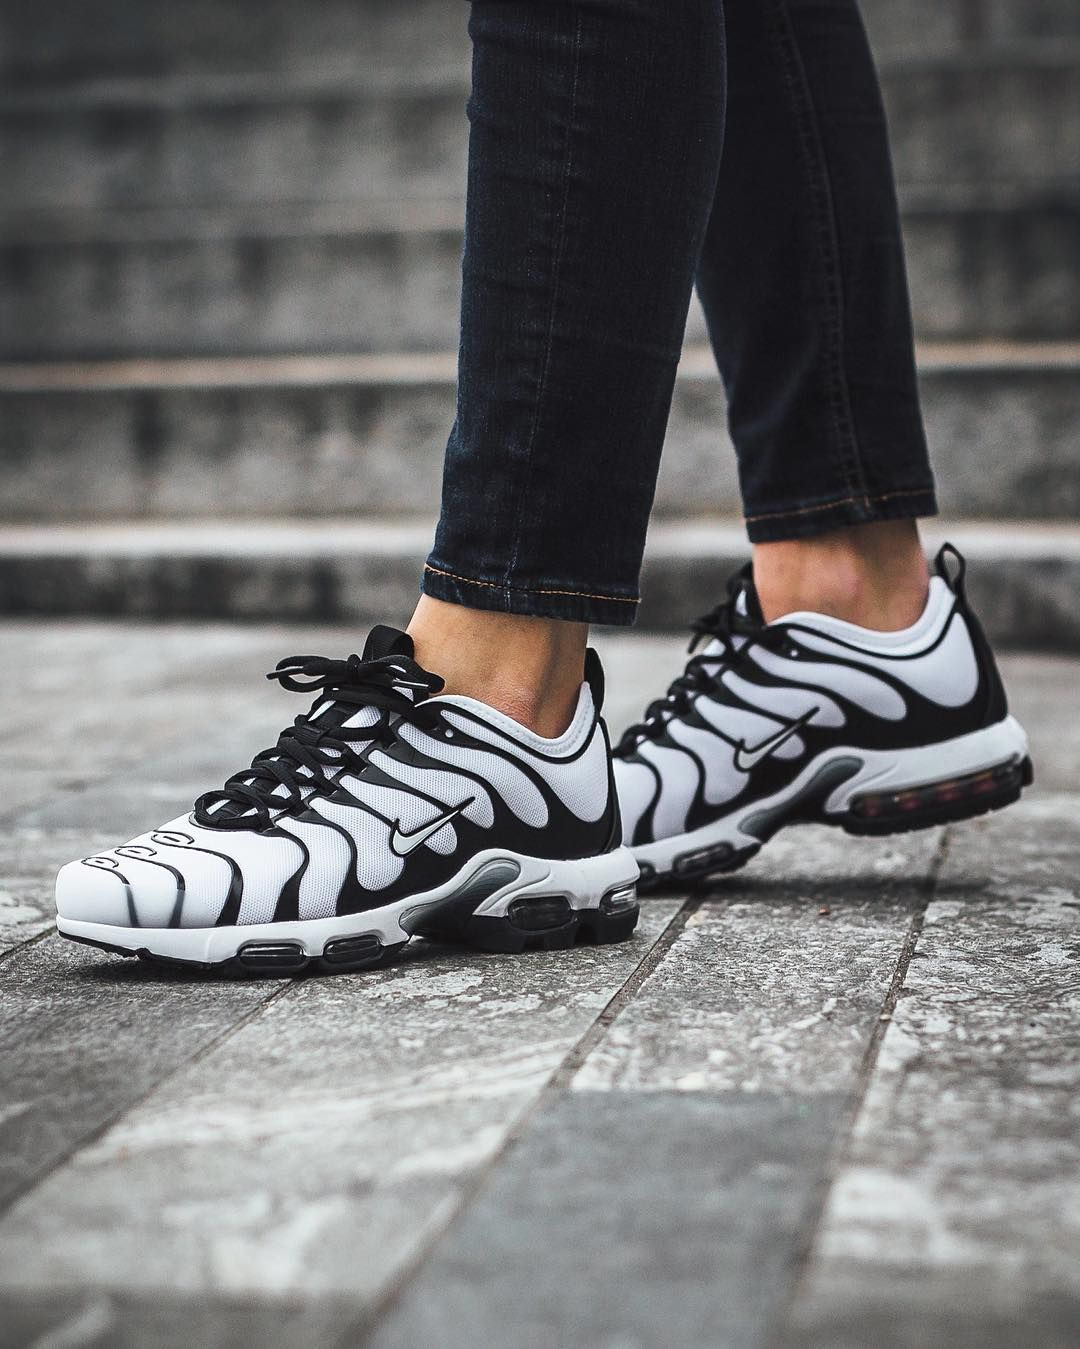 new products eeb2a 49f68 Nike Wmns Air Max Plus TN Ultra: White/White-Black | Nike ...